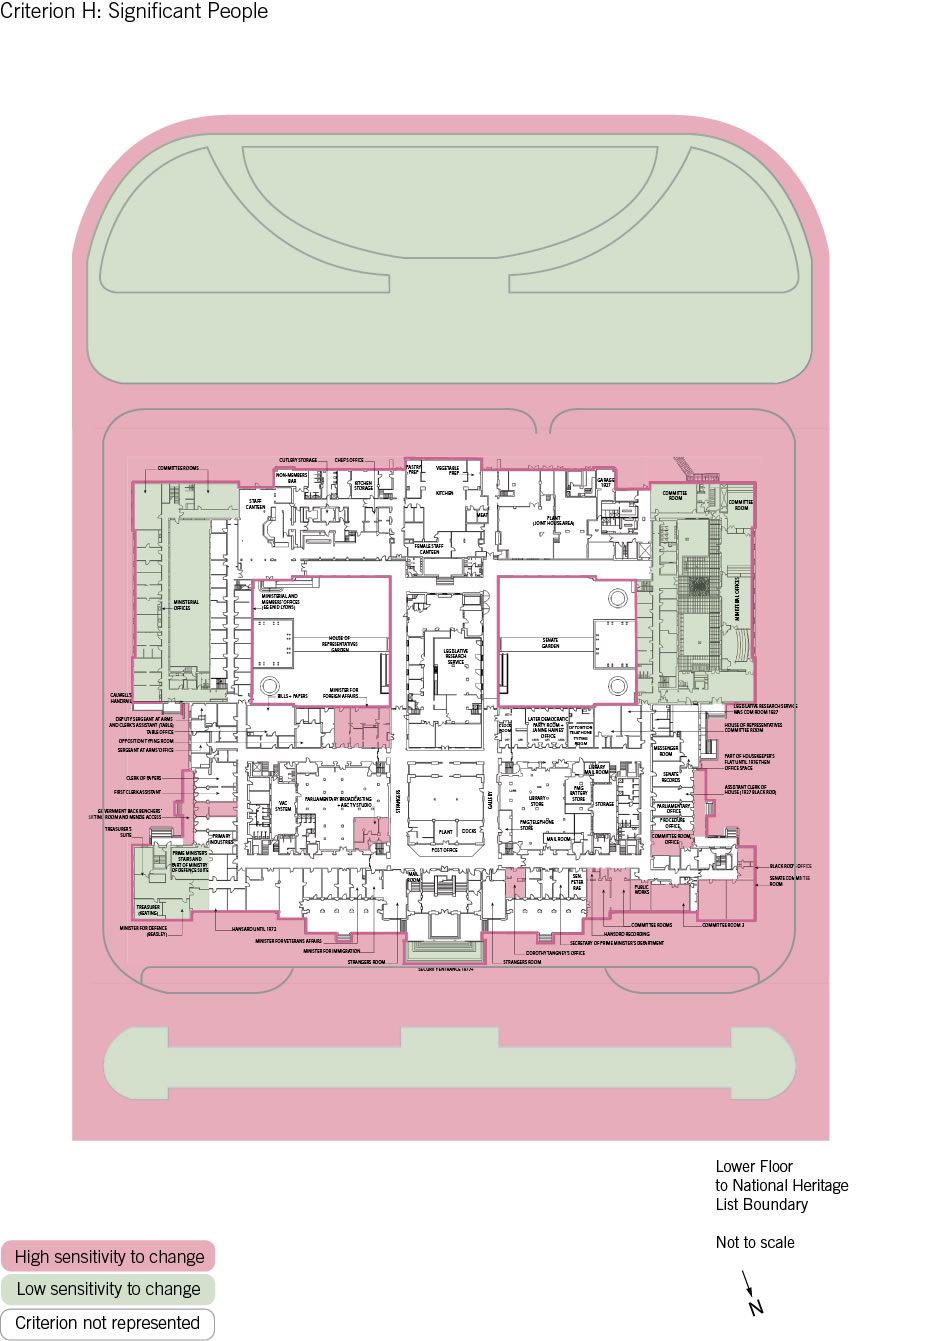 Old Parliament House lower floor plan showing the zones according to criterion H: significant people.